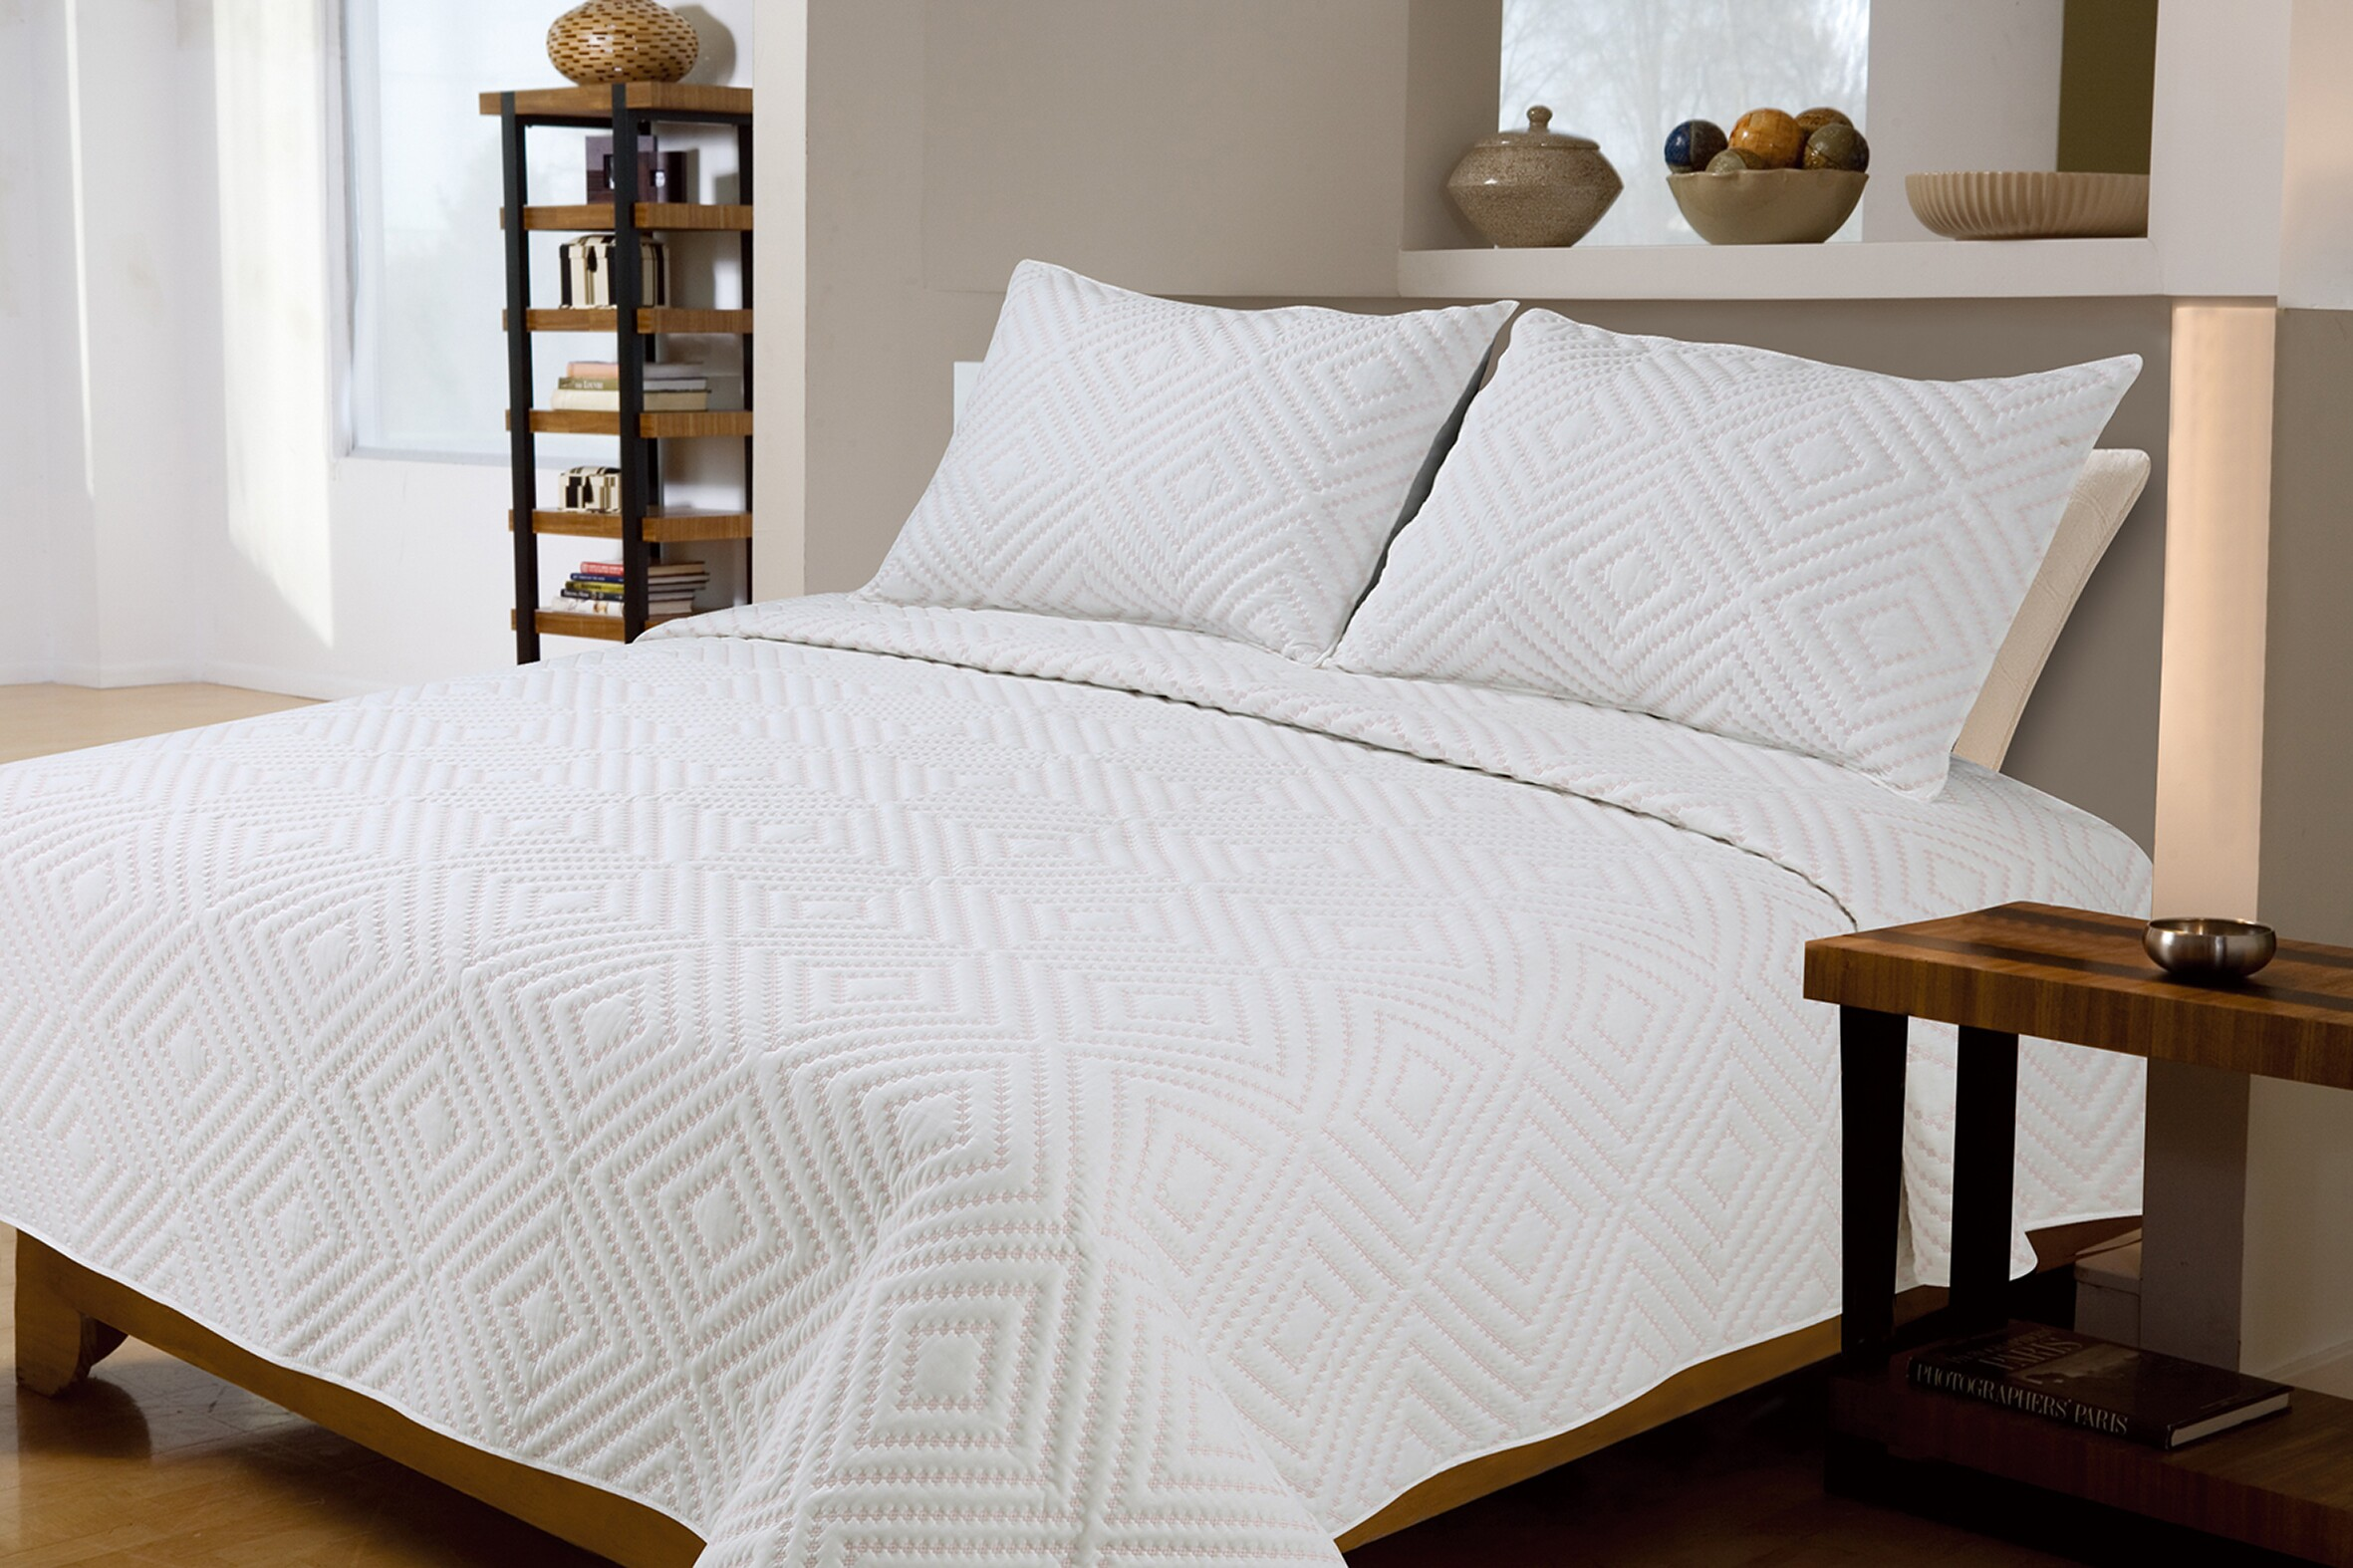 white embroidery cotton quilt